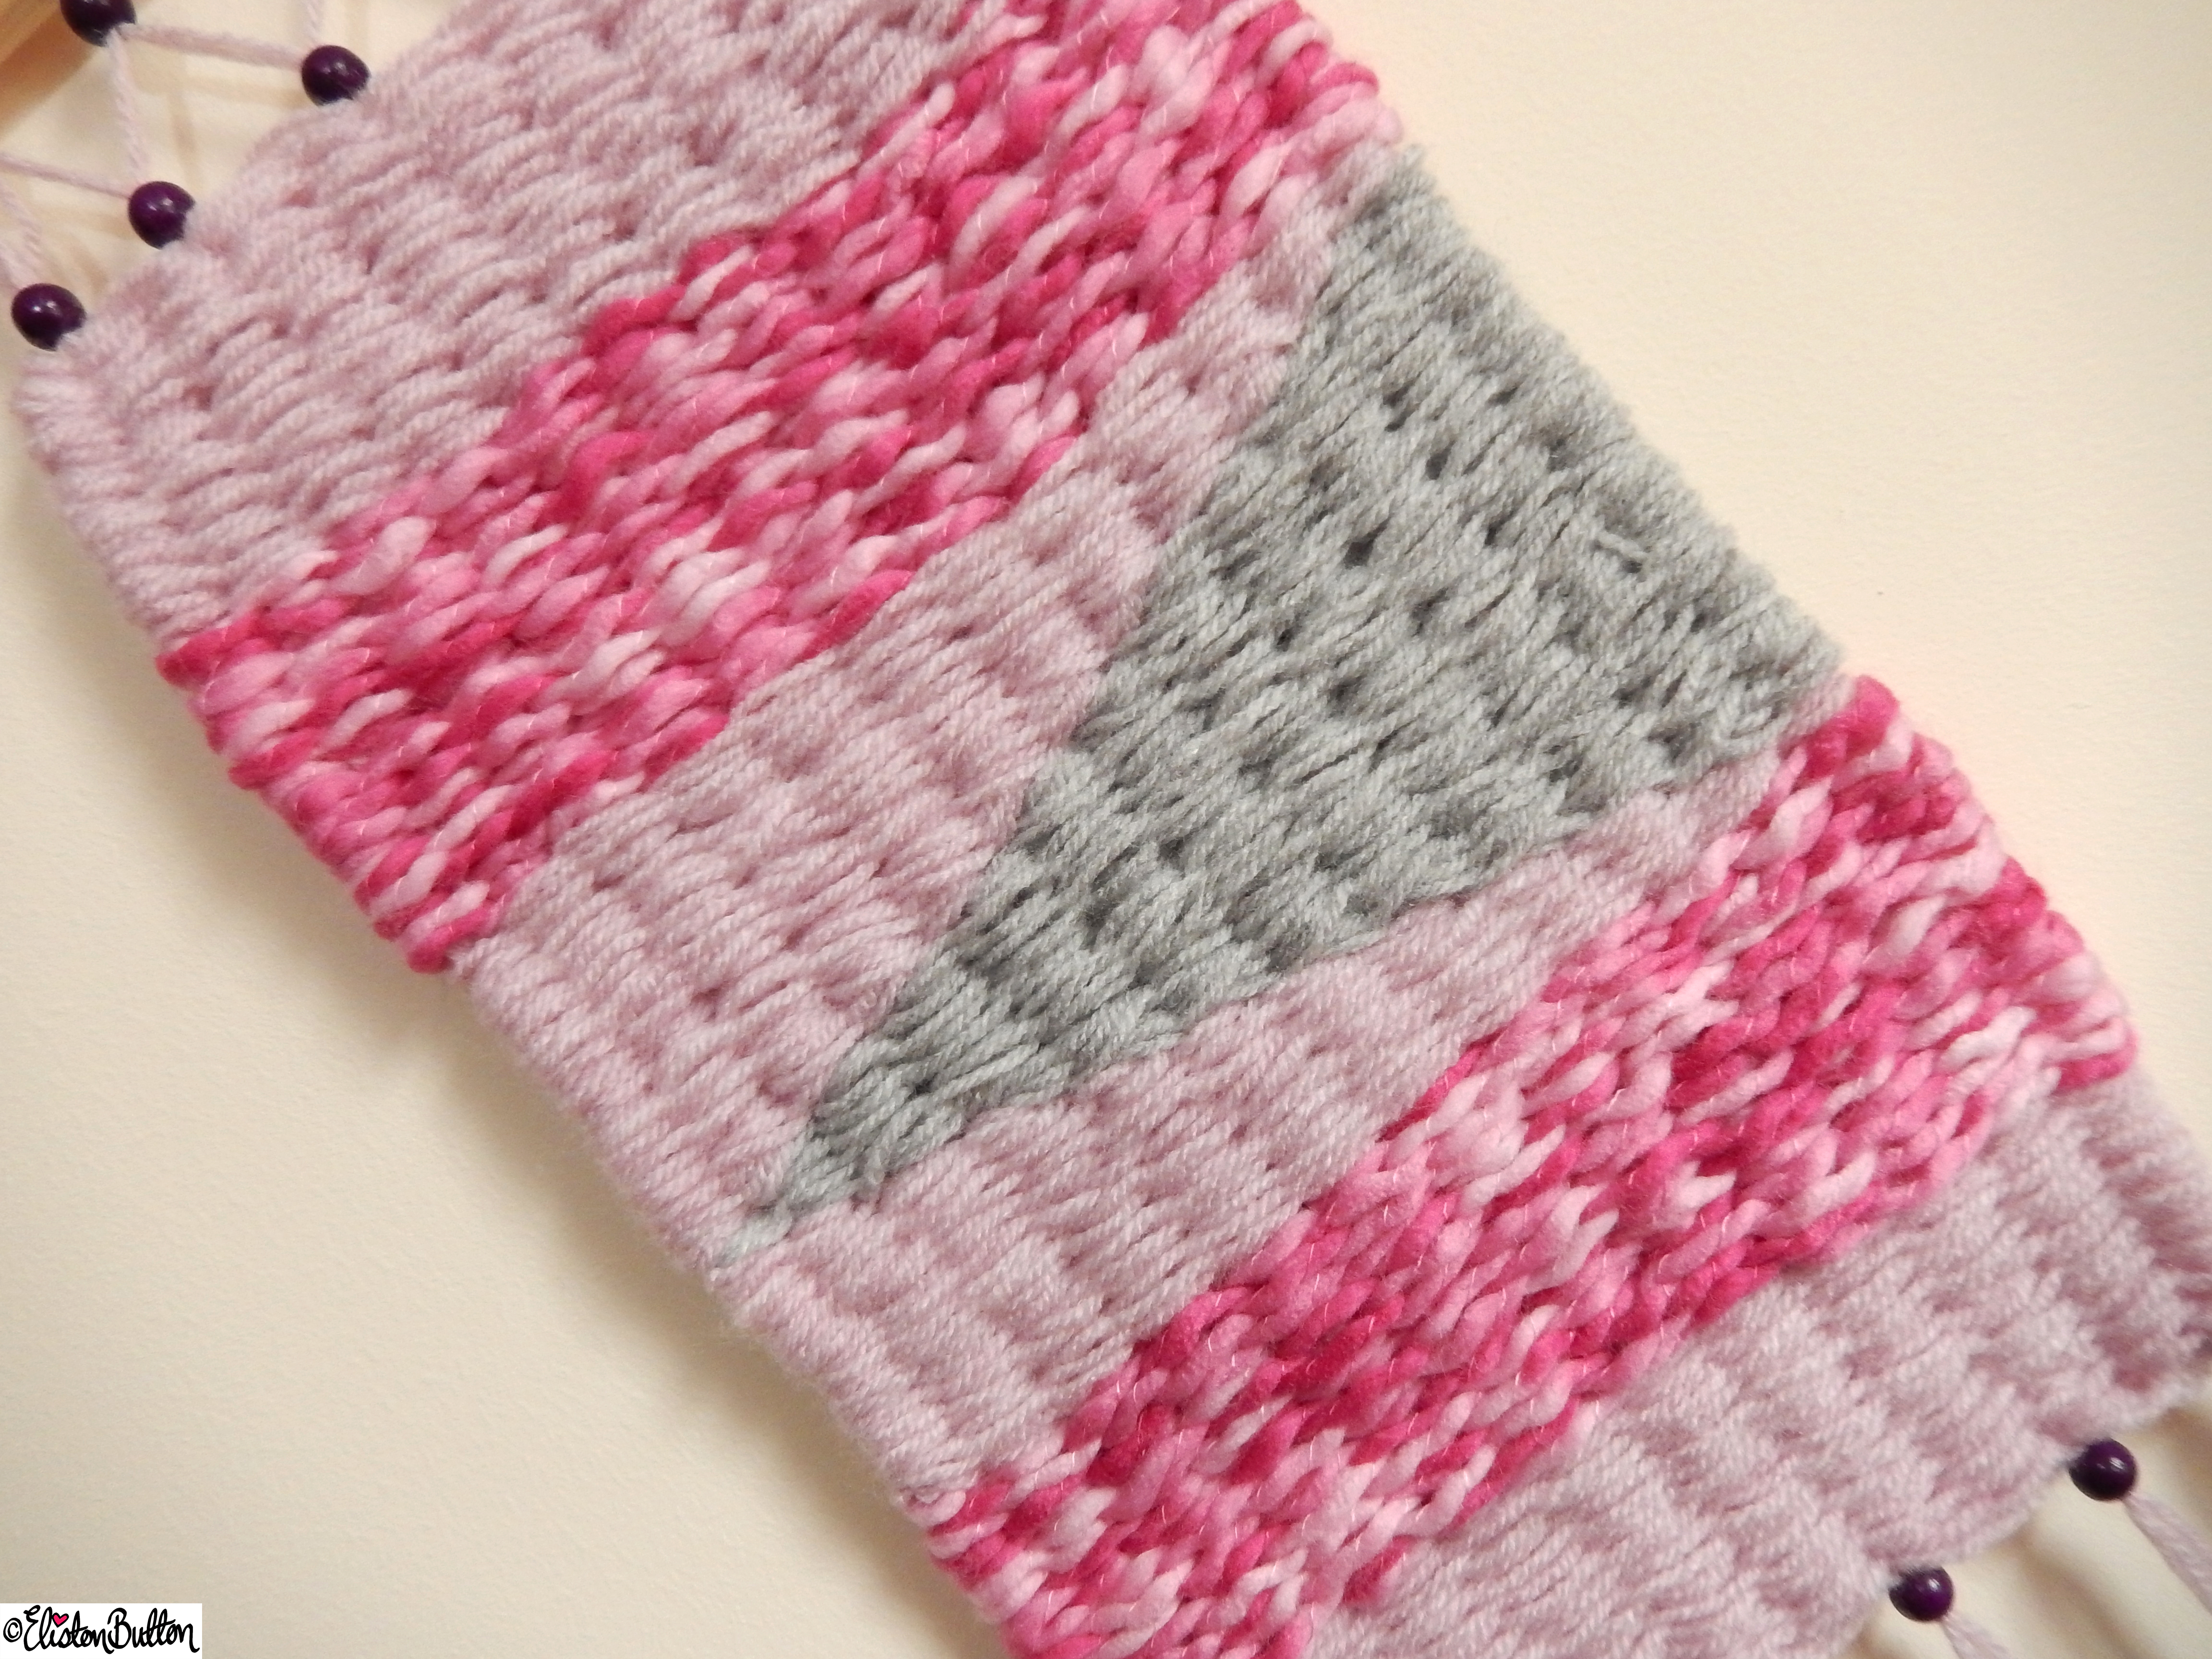 Pretty Pink and Dusky Grey Woven Wall Hanging Middle Section Close Up - Create 28 - No. 7&8 - Woven Wall Hangings at www.elistonbutton.com - Eliston Button - That Crafty Kid – Art, Design, Craft & Adventure.